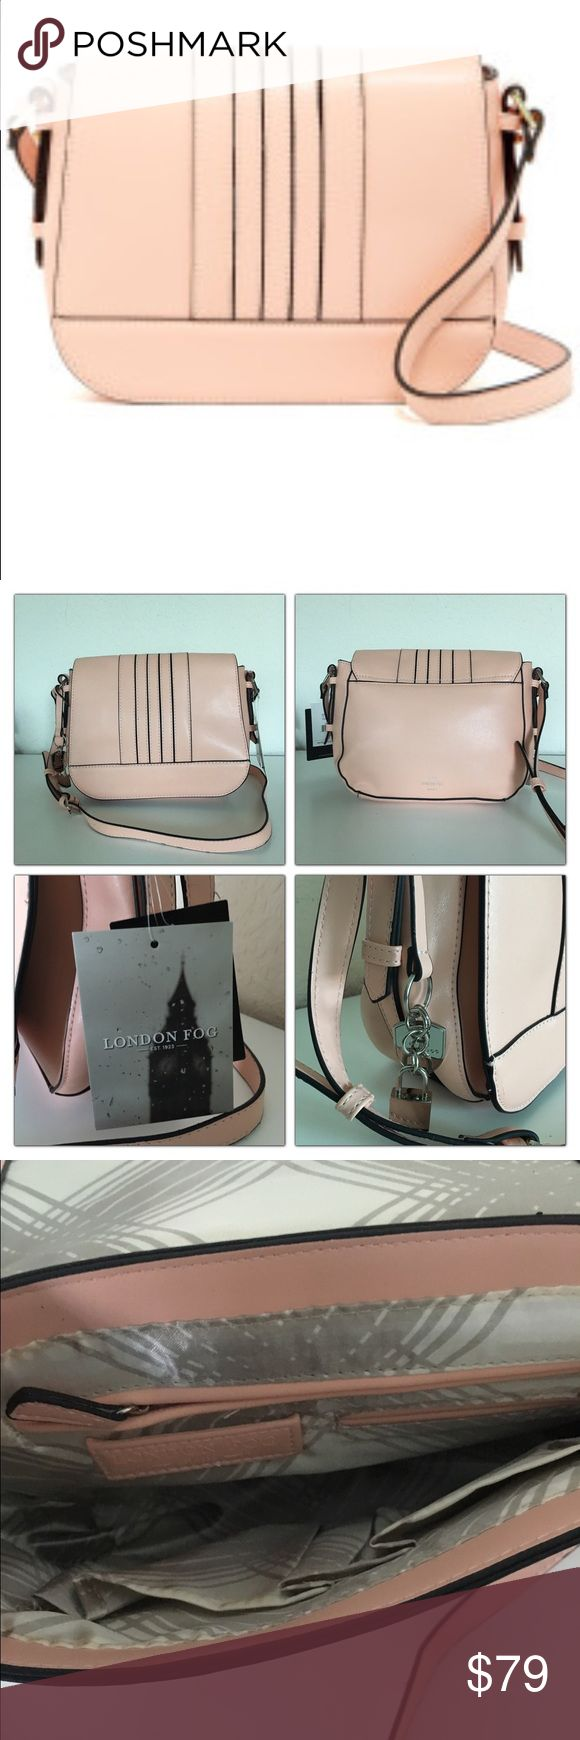 """🆕LONDON FOG BAG Adjustable shoulder strap. Foldover flap with magnetic closure. Faux leather construction. Interior features zip wall pocket, slip wall pocket, and 2 media pockets. Approx. 8"""" H x 10"""" W x 4"""" D. Approx. 21-23"""" strap drop. Faux leather exterior, textile lining. London Fog Bags"""